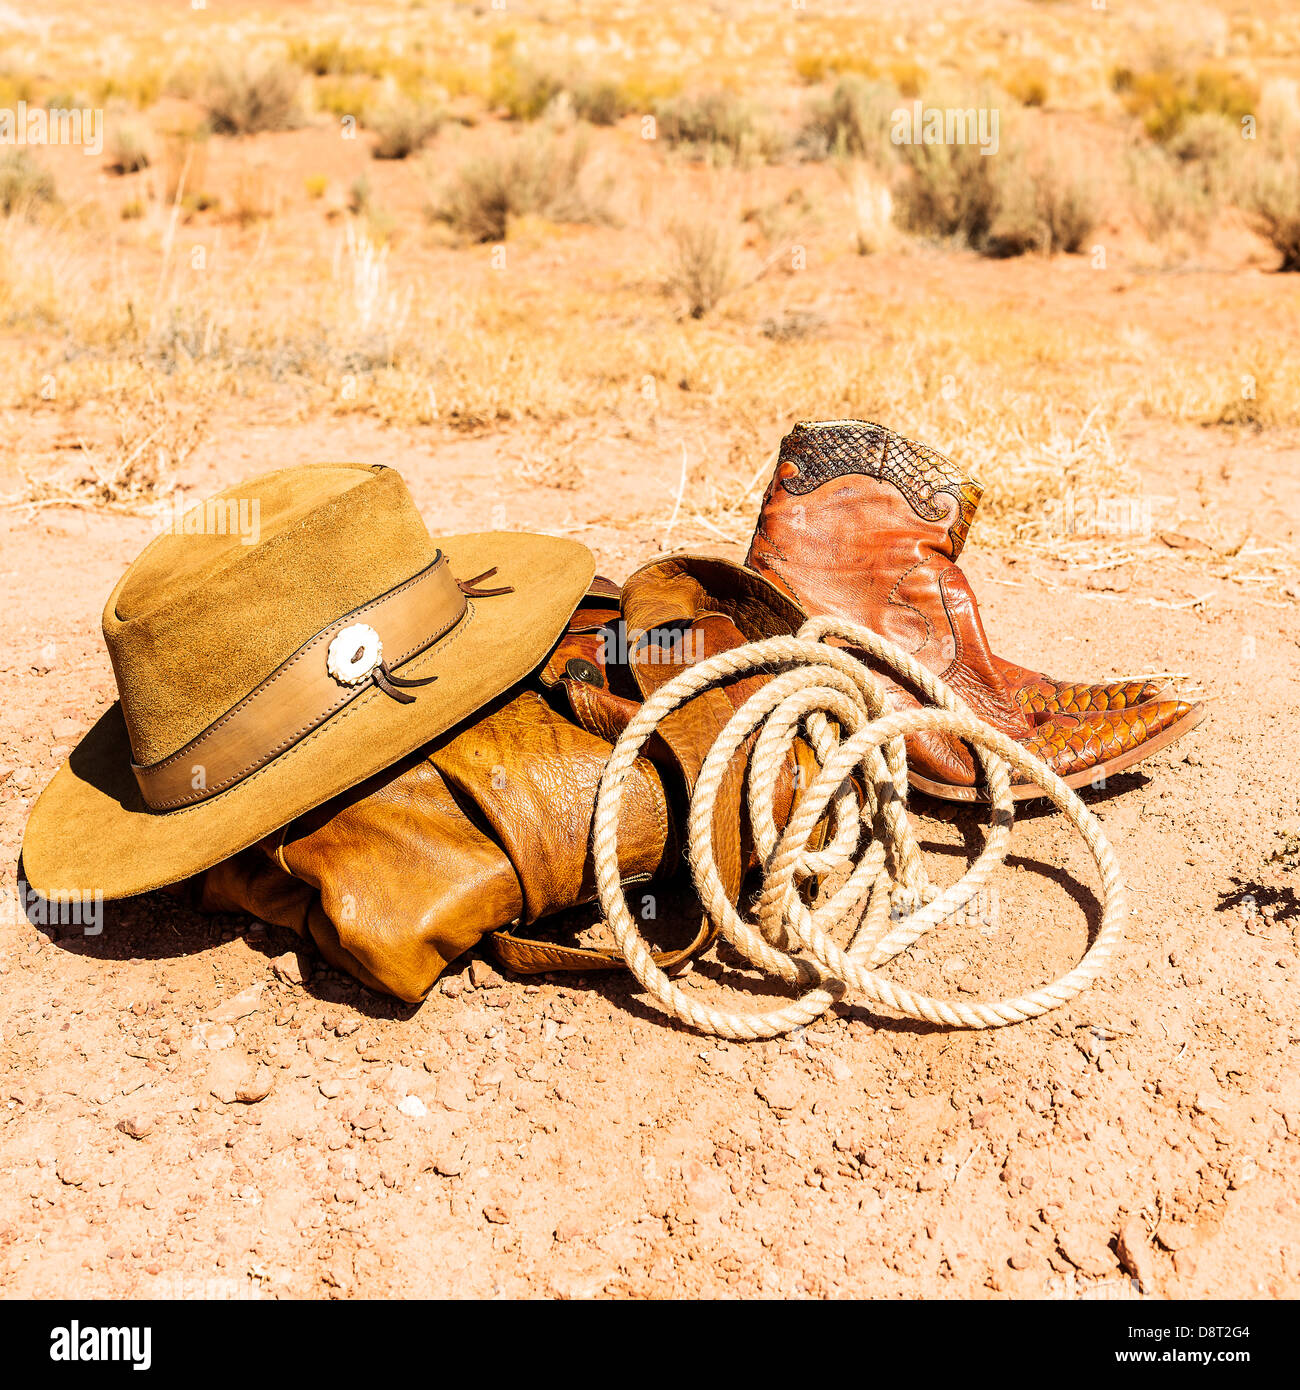 rancher objects in the middle of the southwest desert, USA - Stock Image